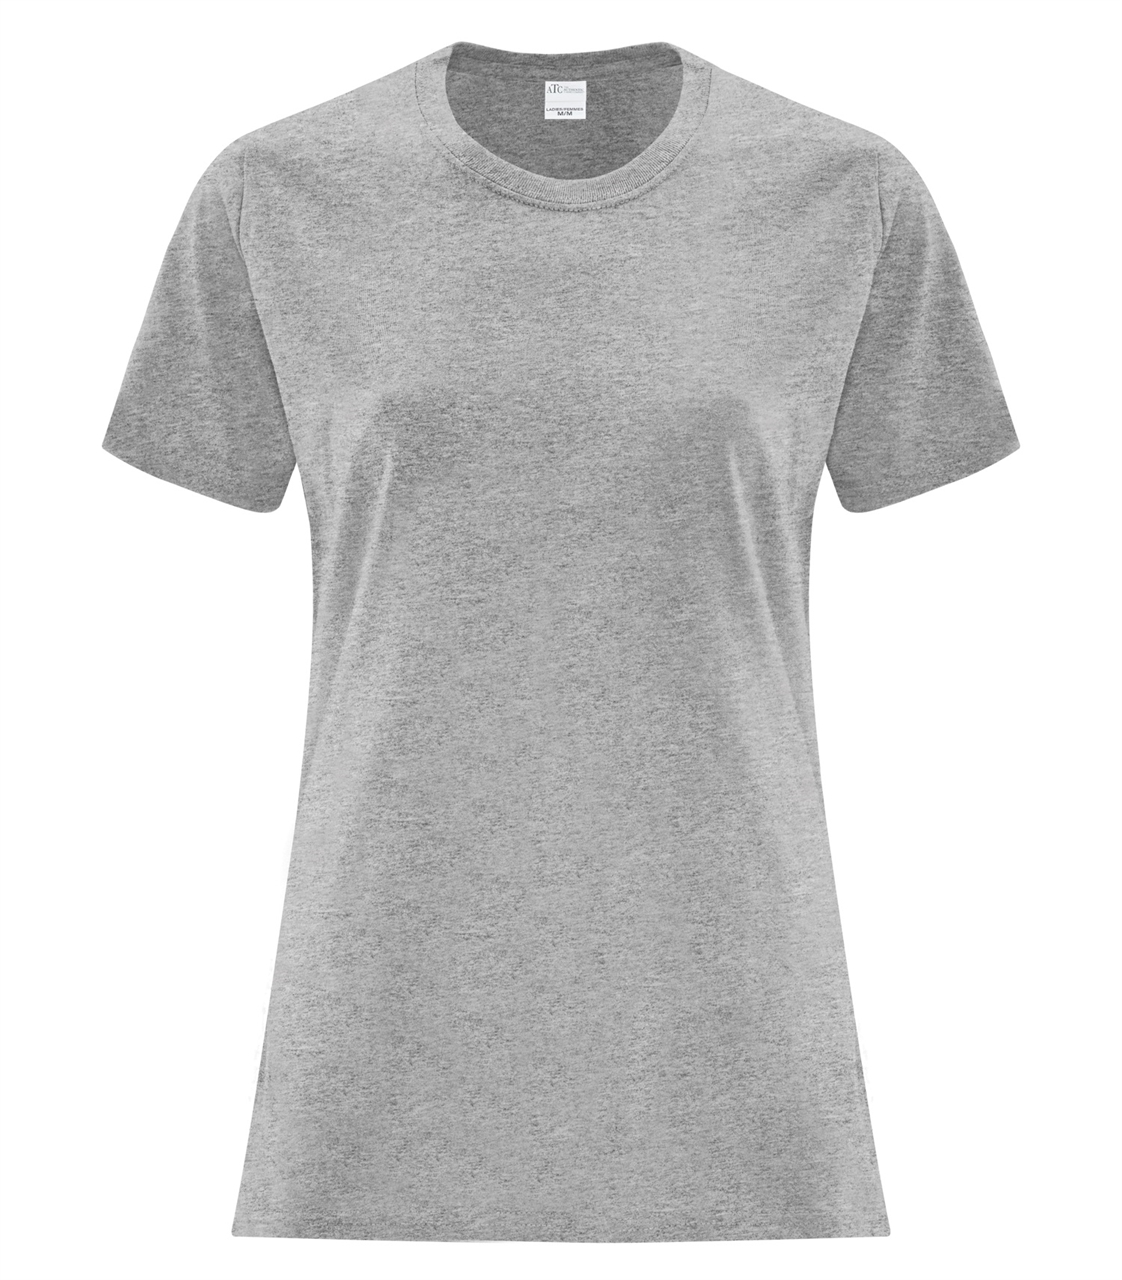 Picture of ATC Everyday Cotton Ladies Tee